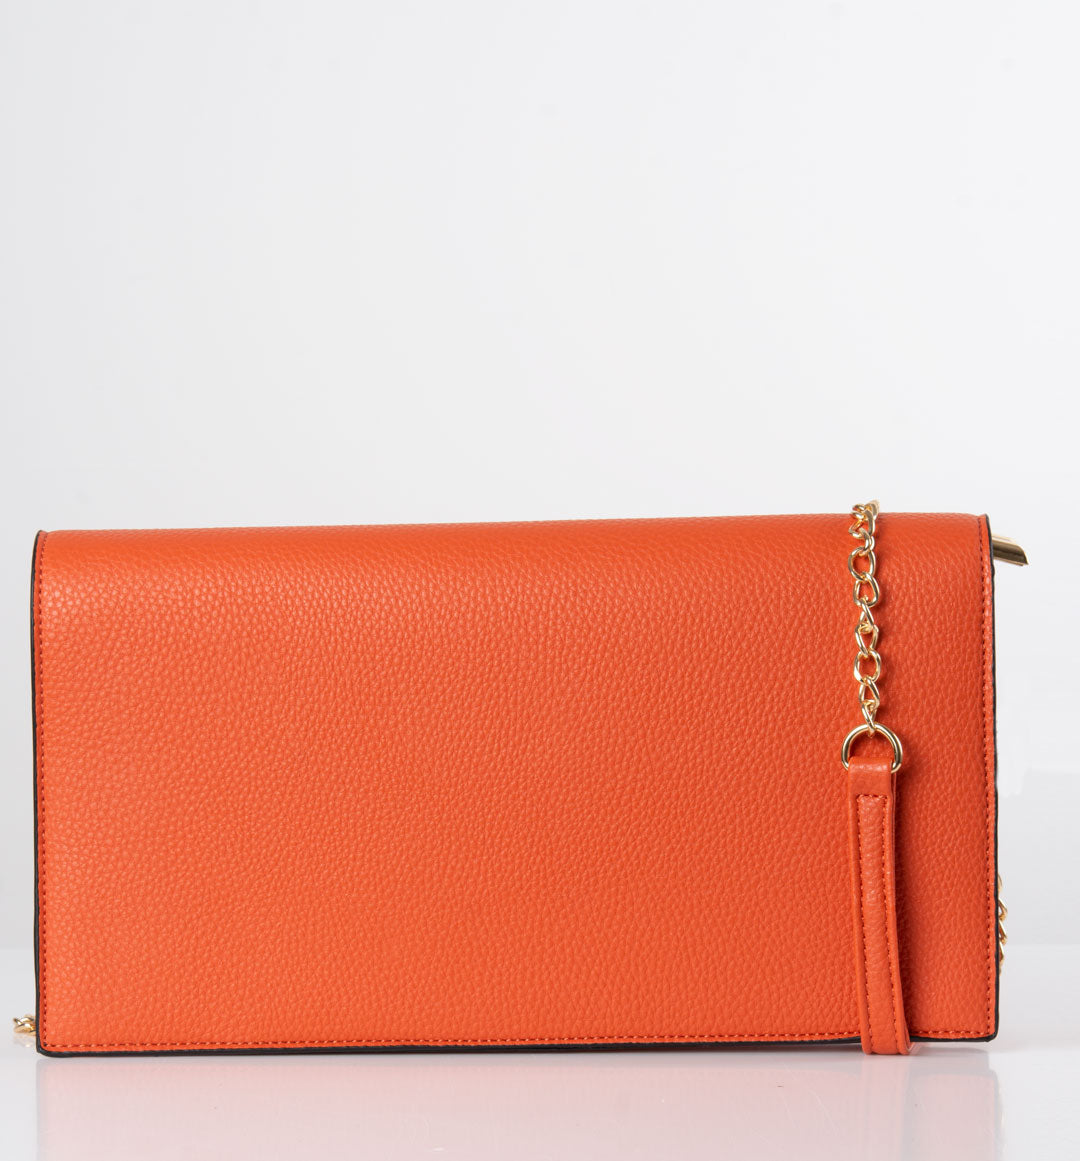 an image showing an orange shoulder bag